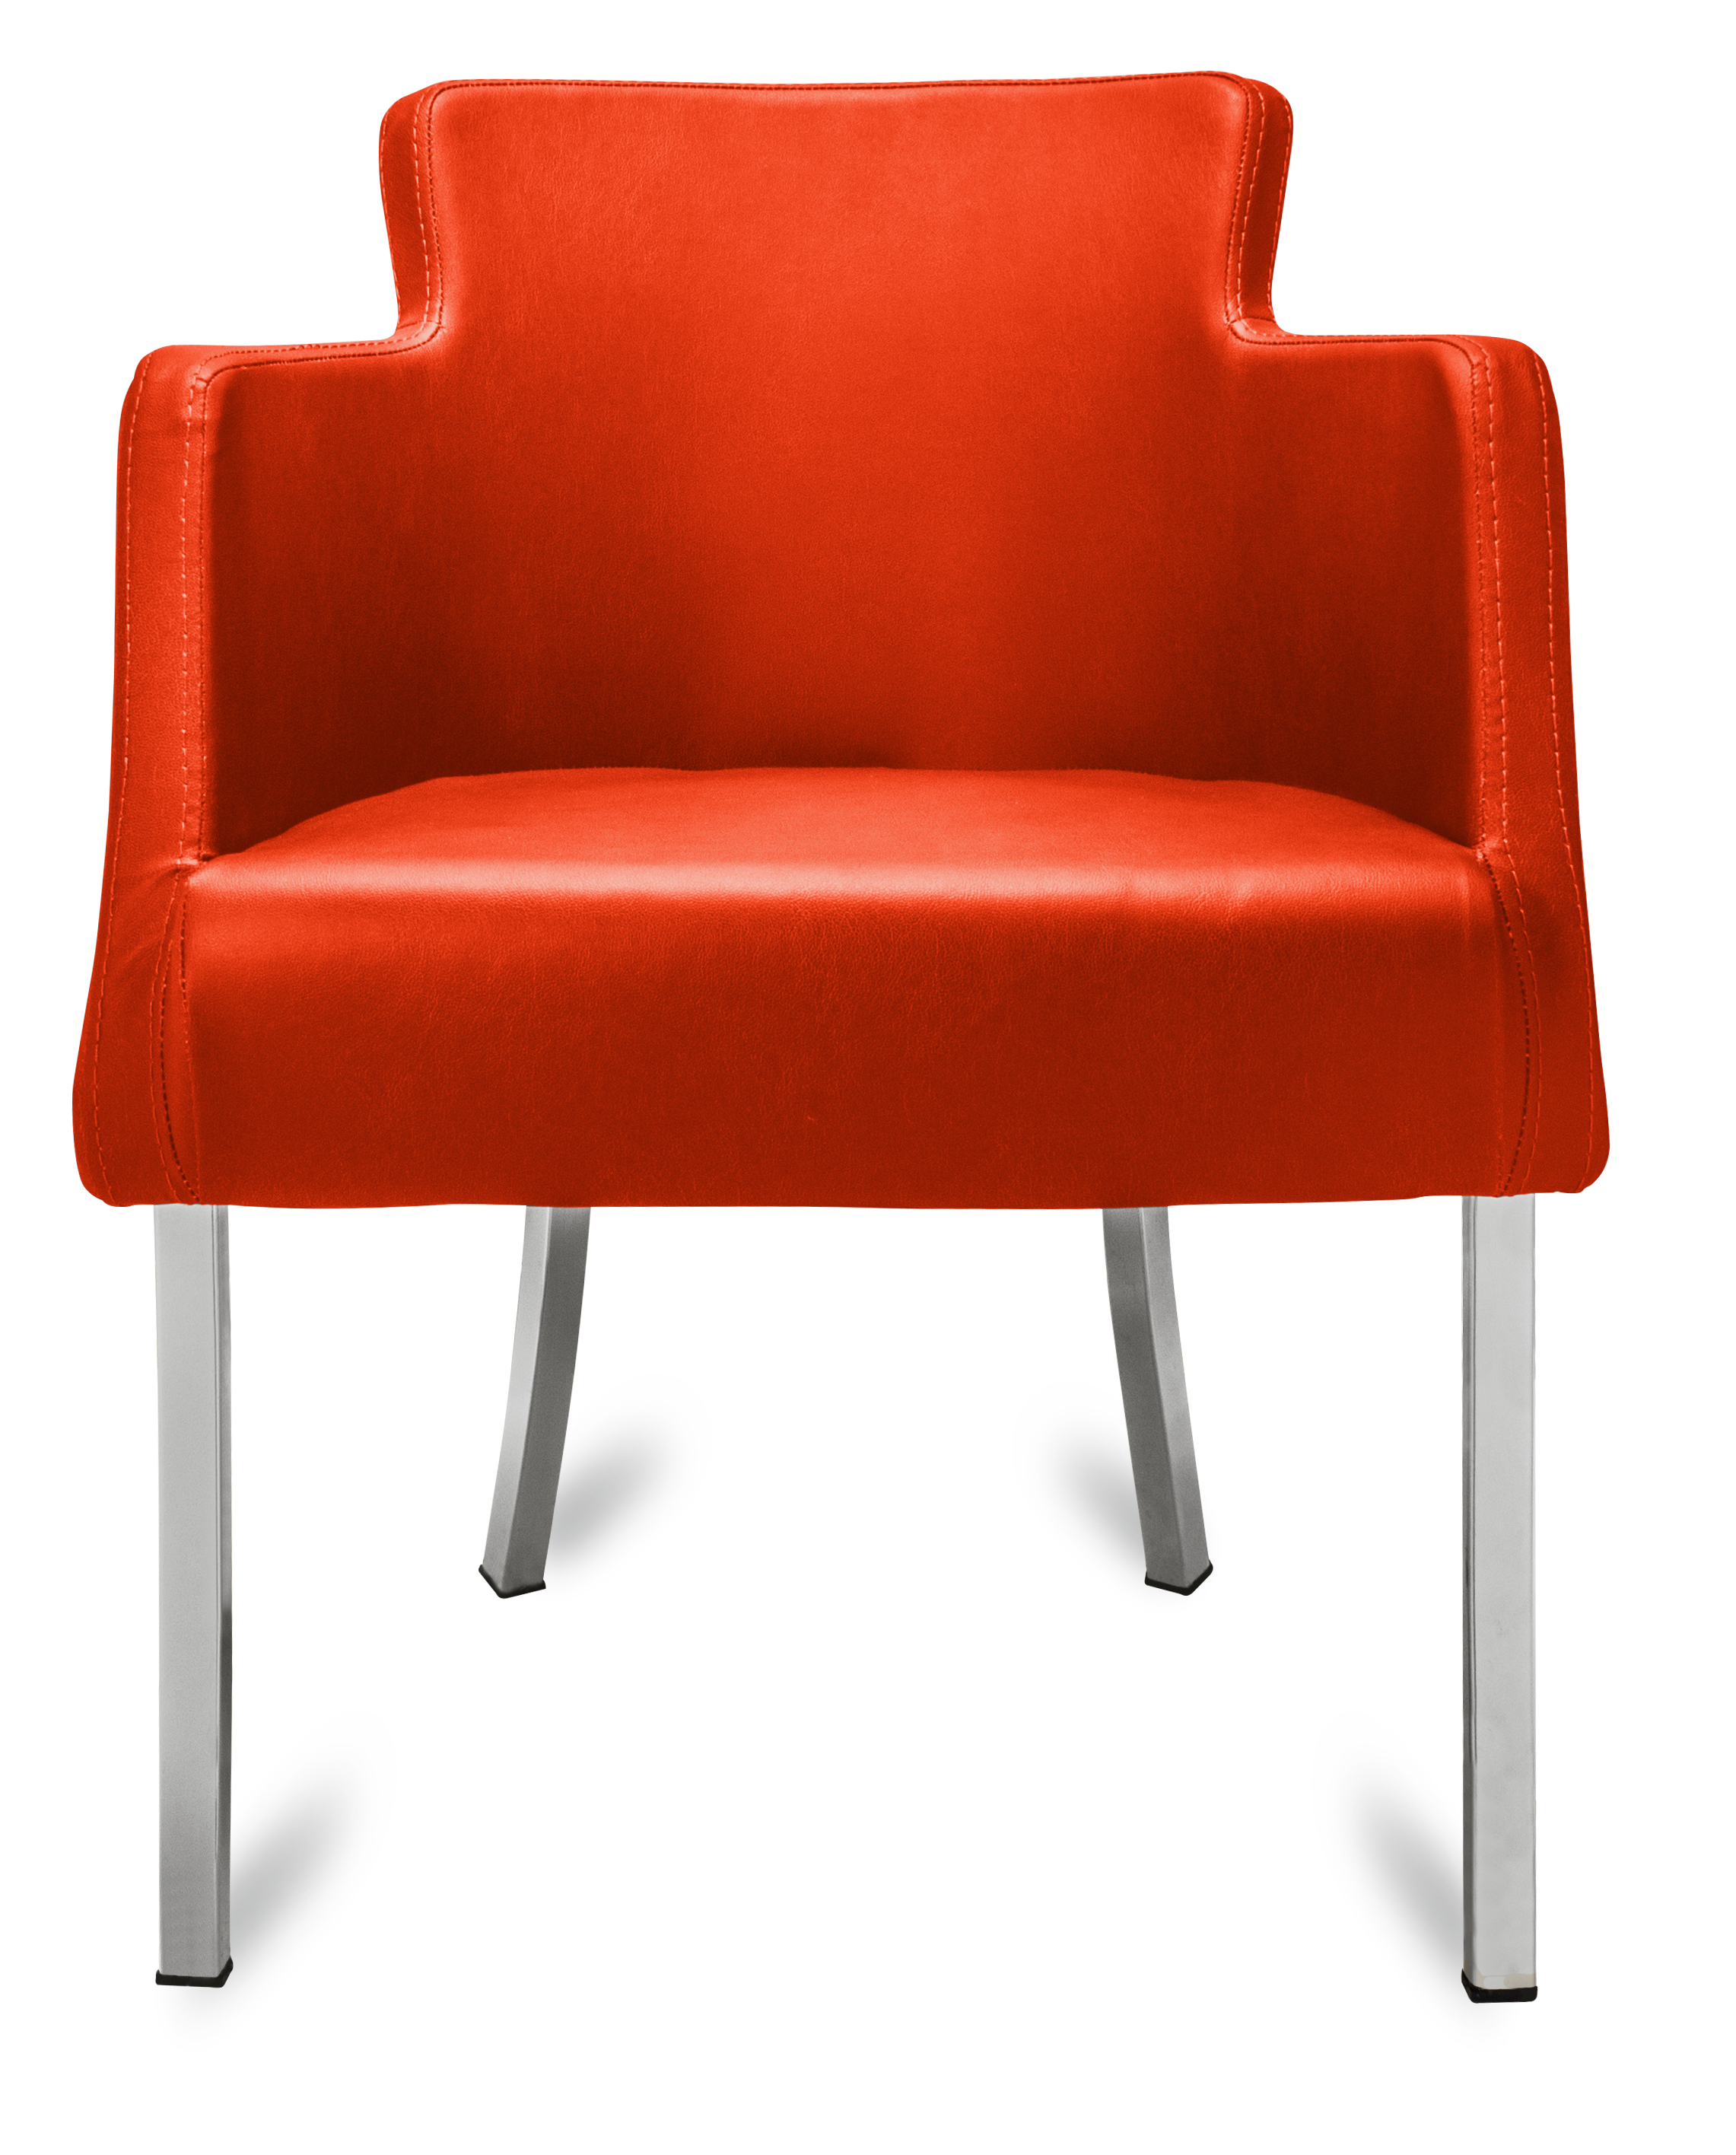 Gastro stuhl sessel primo orange g nstig kaufen m bel star for Sessel stuhl